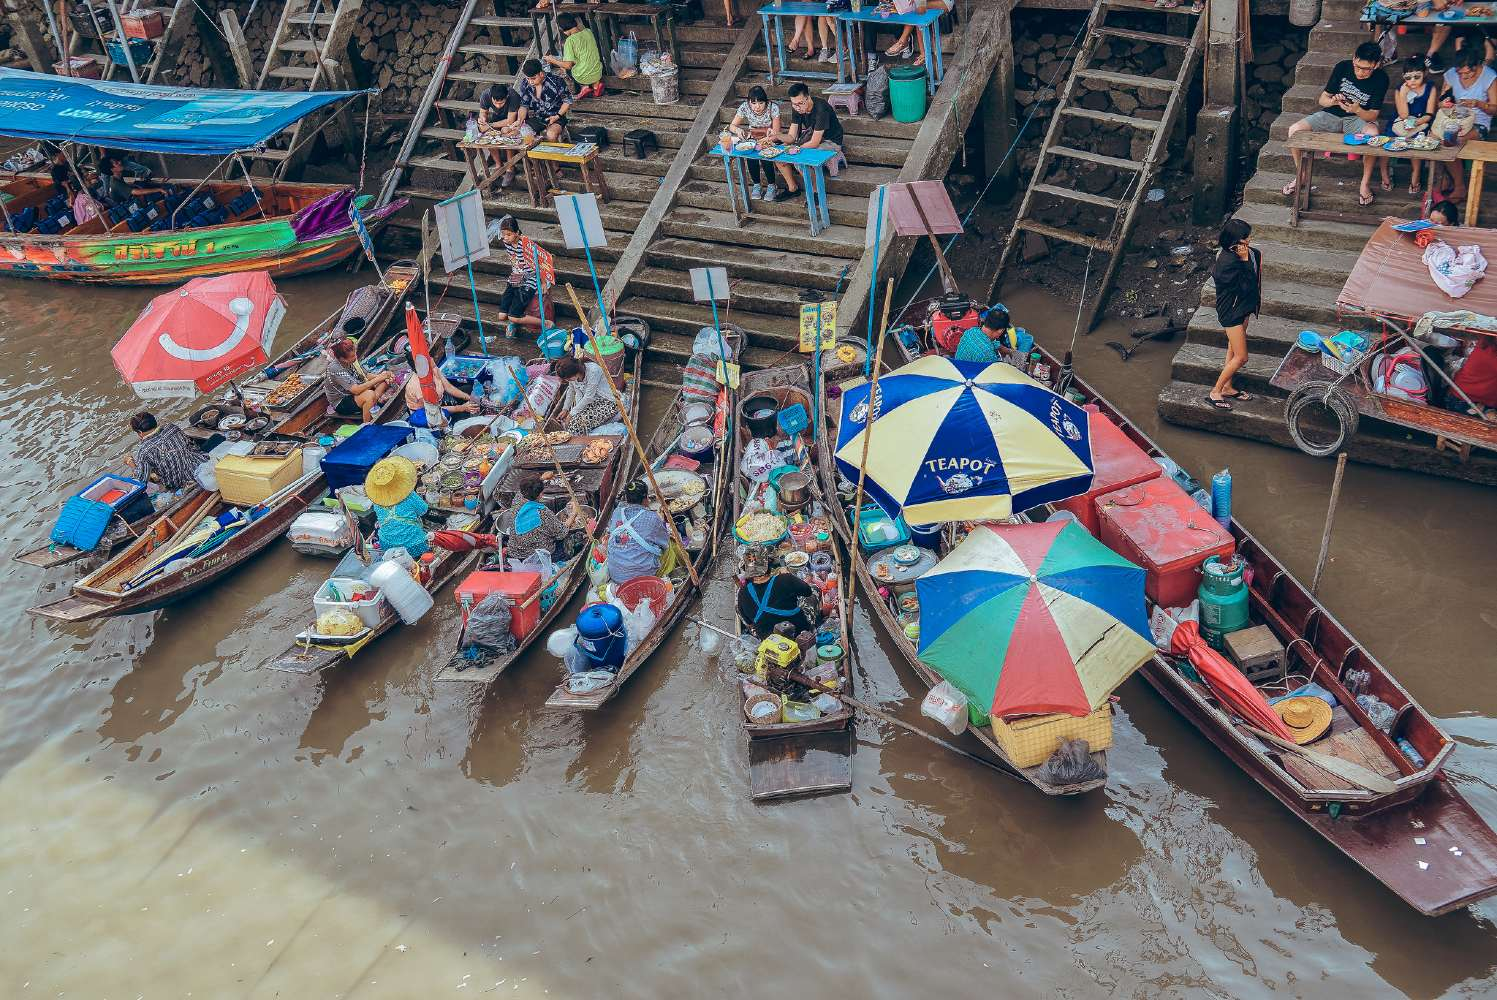 Cooking on small boats on the river at the Amphawa Floating Market in Bangkok